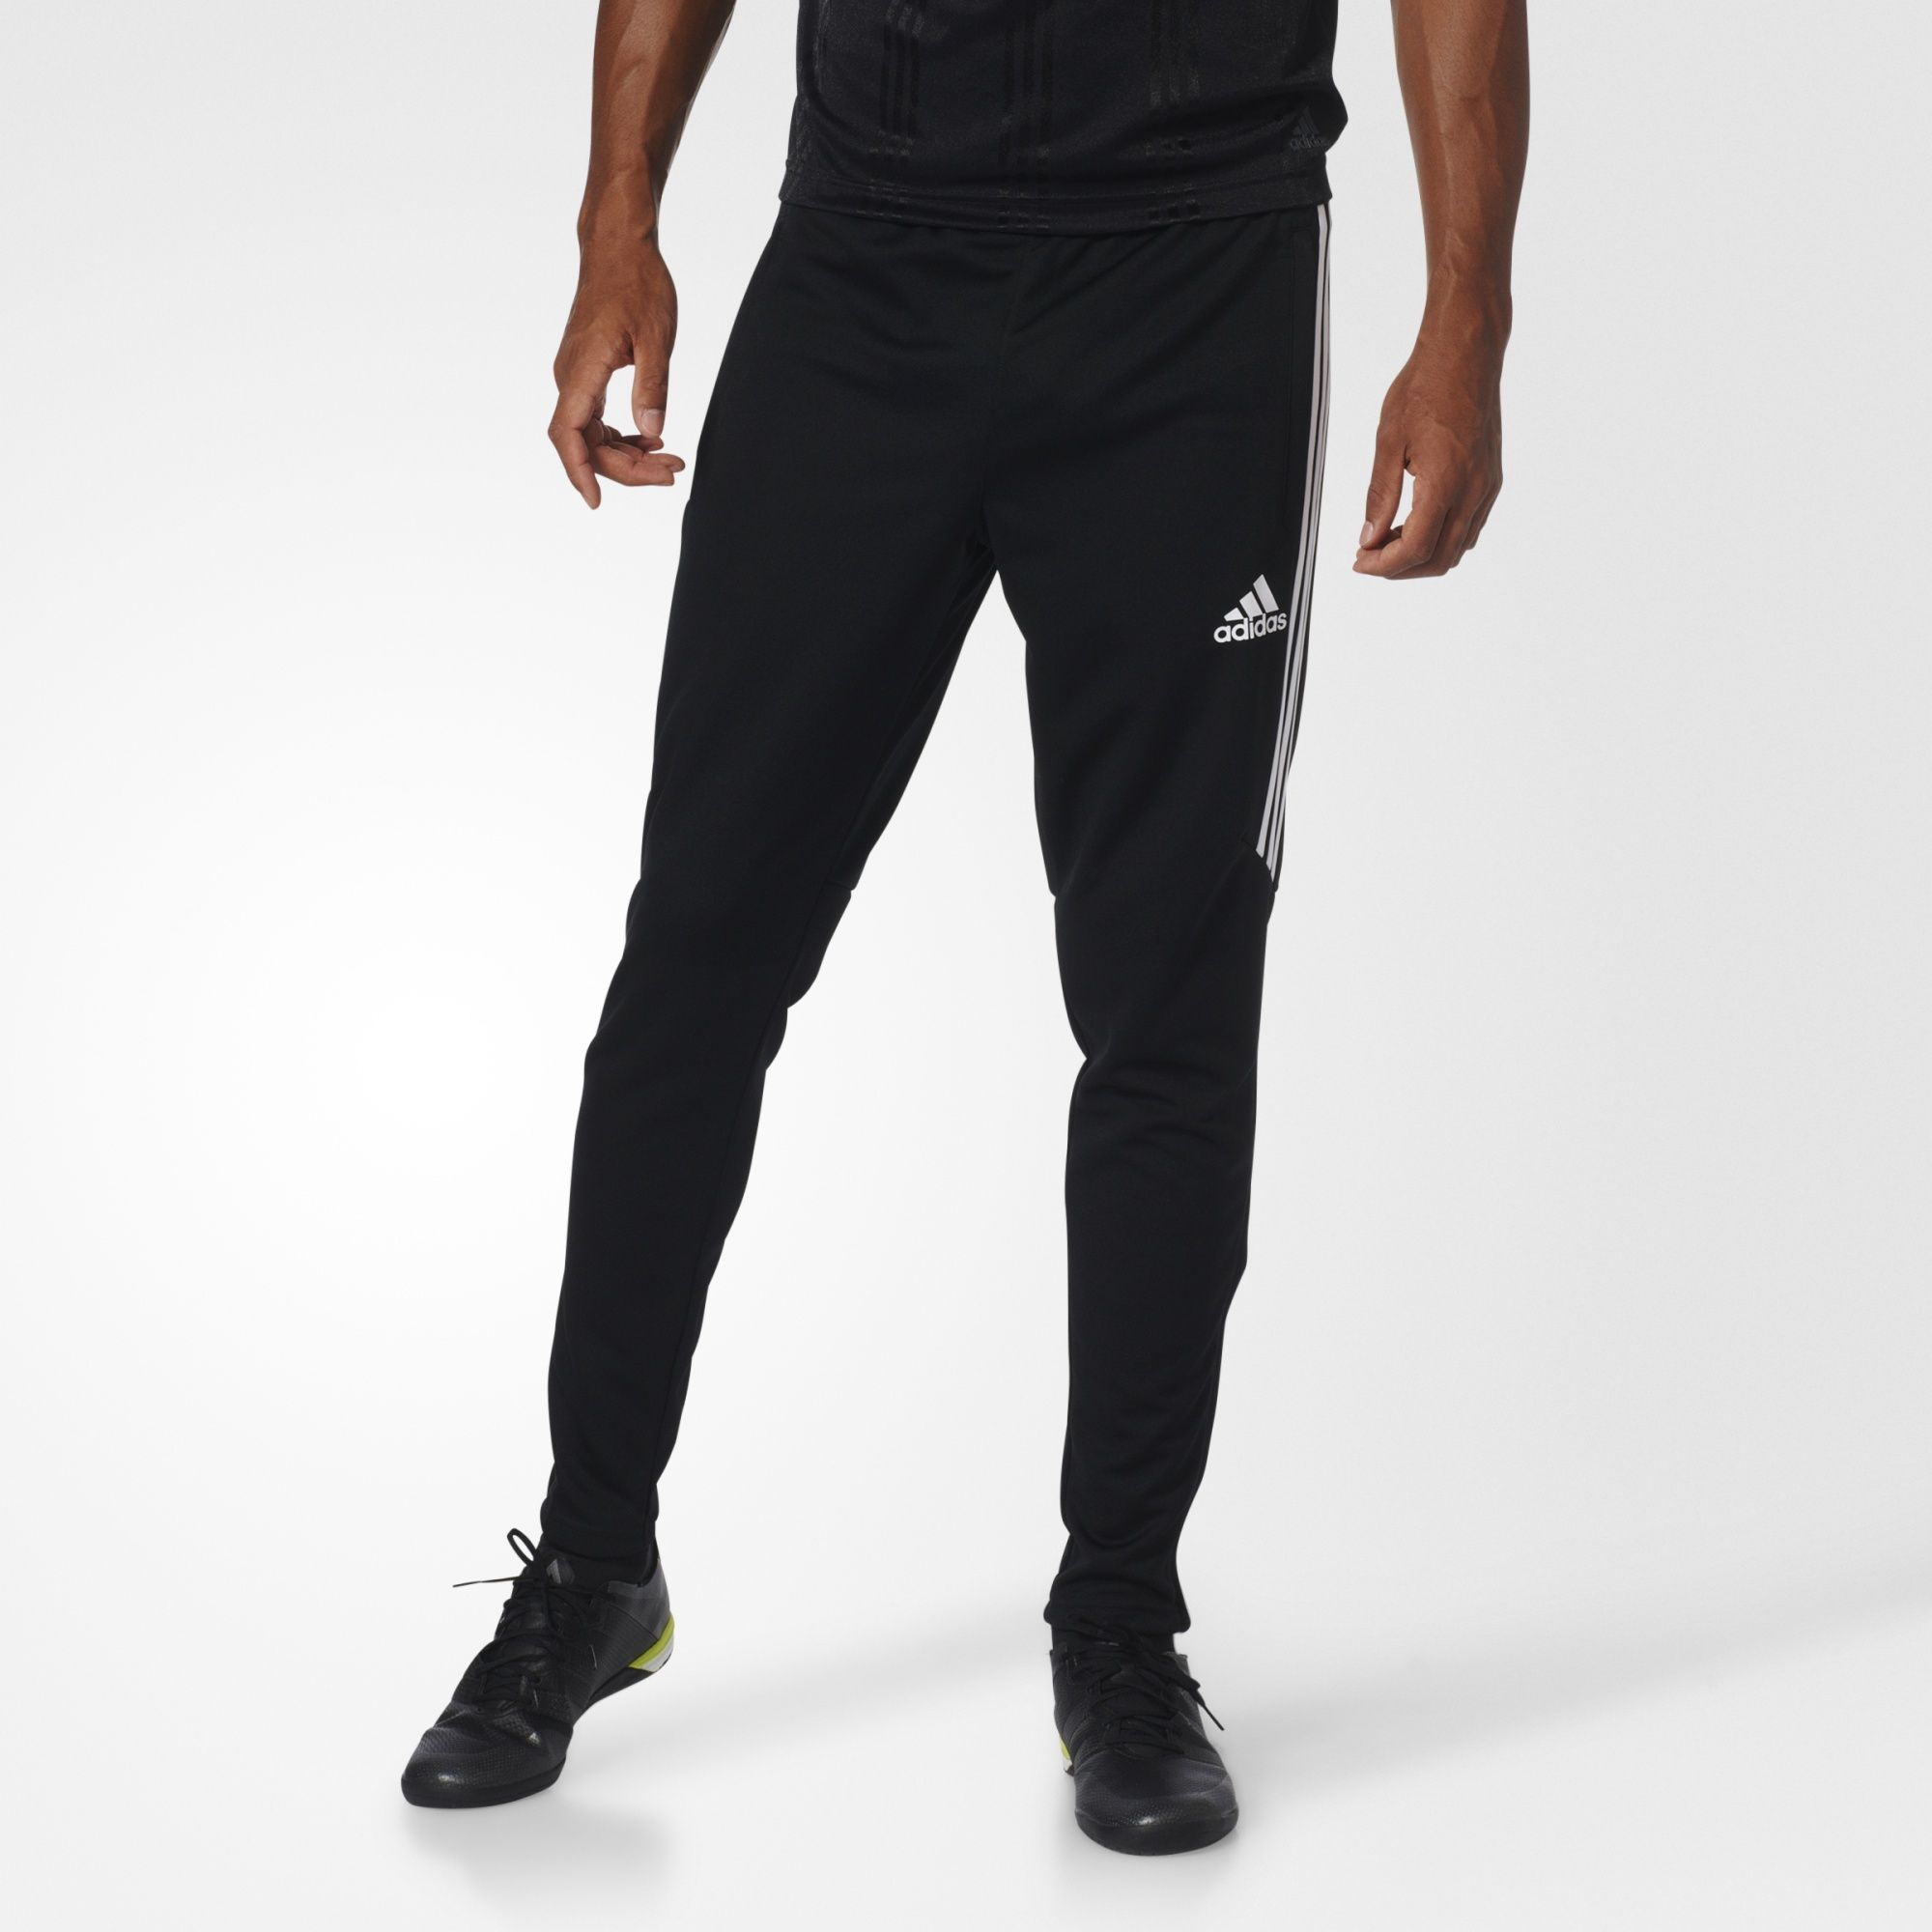 66096e0fc1 adidas Tiro 17 Training Pants | Sweatpants | Adidas joggers, Adidas ...